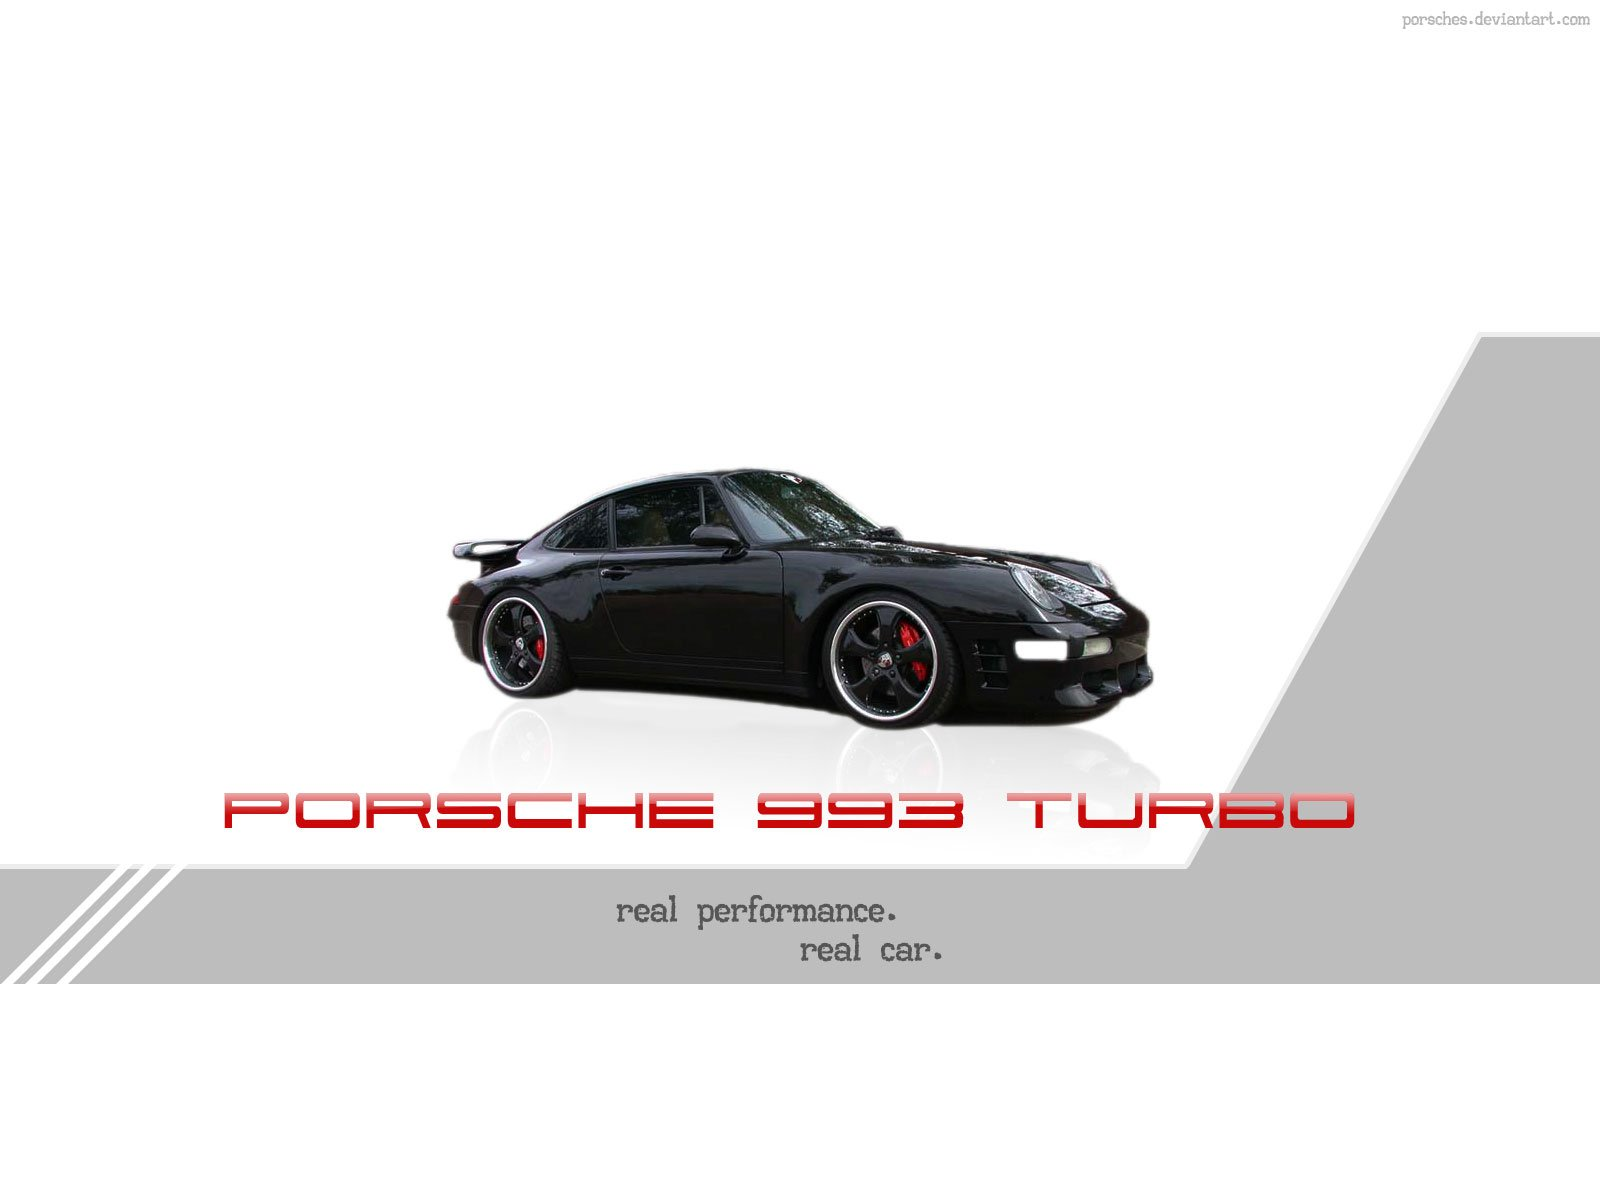 1 Porsche 993 Turbo Hd Wallpapers Background Images Wallpaper Abyss